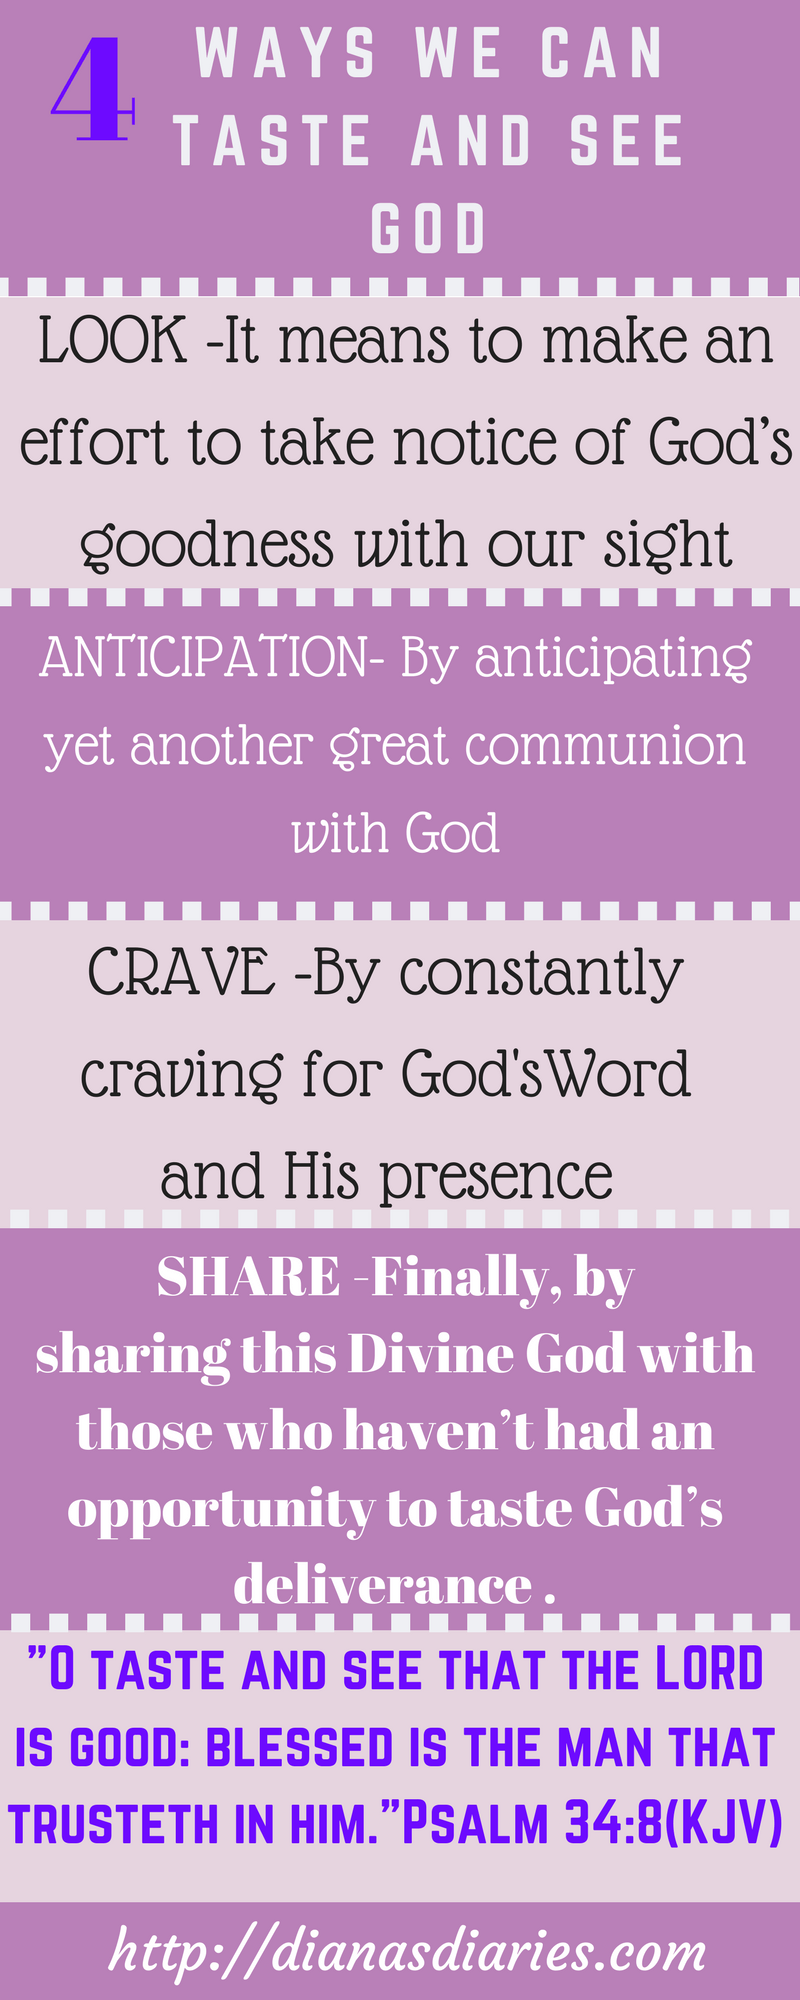 Taste and See God:Bible